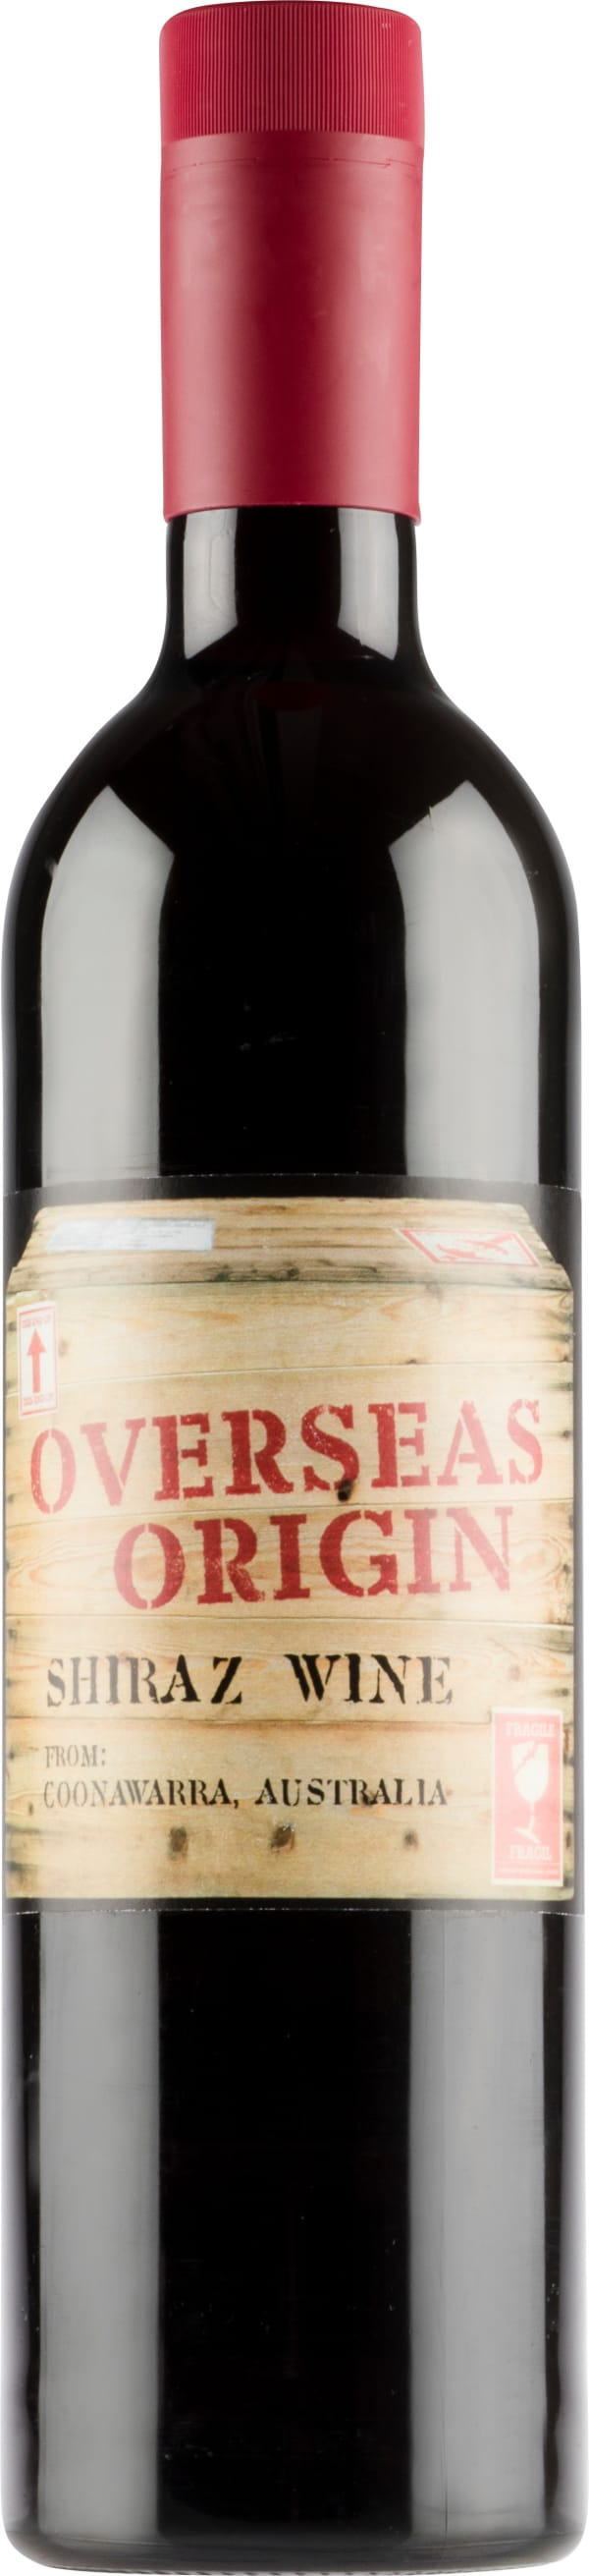 Overseas Origin Shiraz 2018 plastic bottle